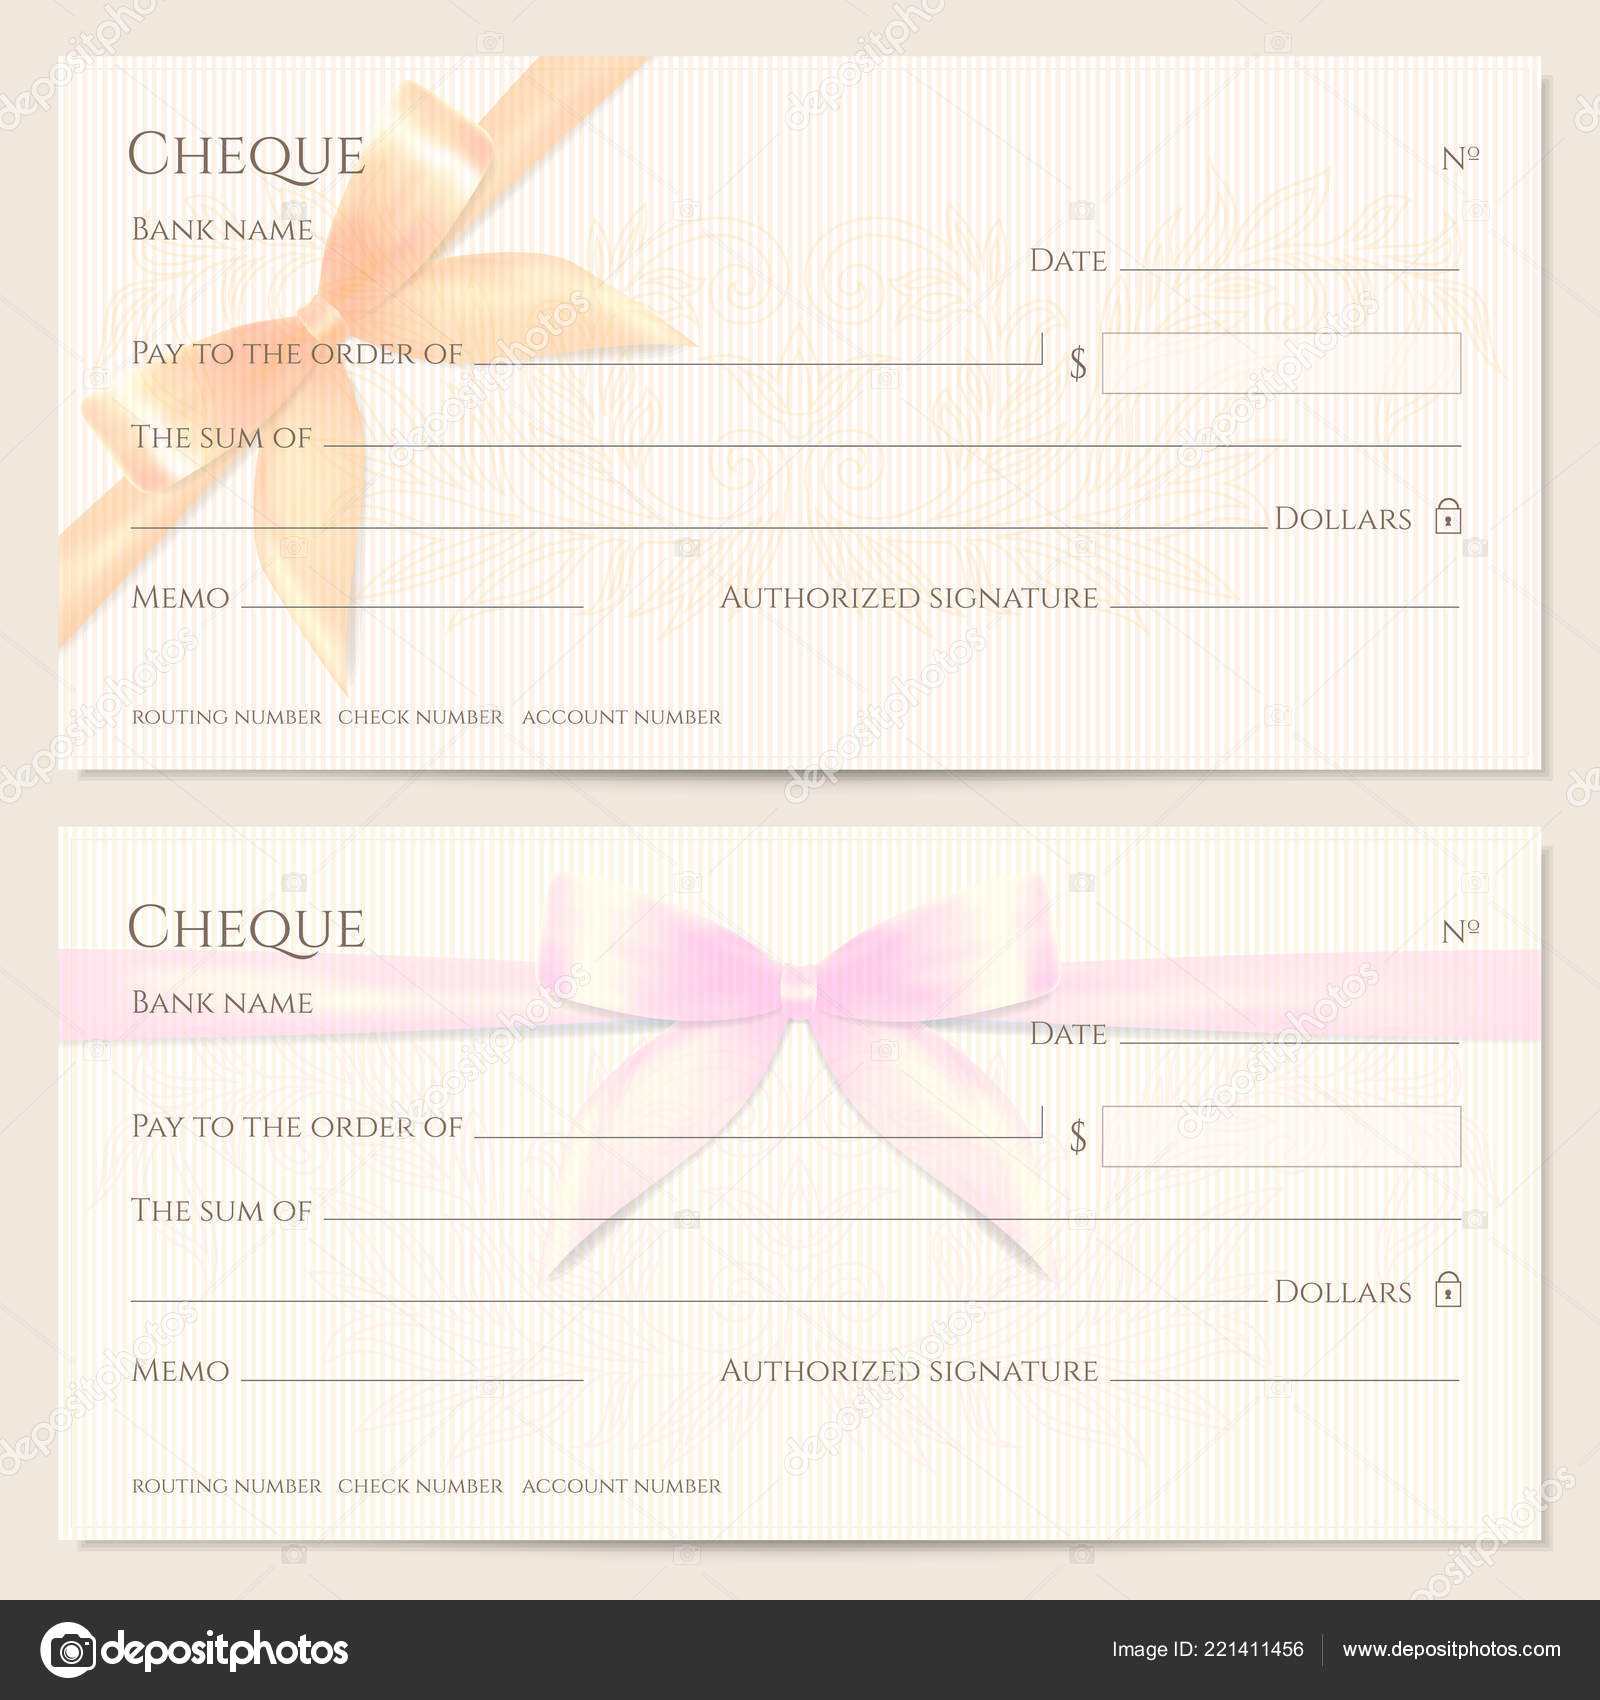 check cheque chequebook template floral pattern orange pink bow